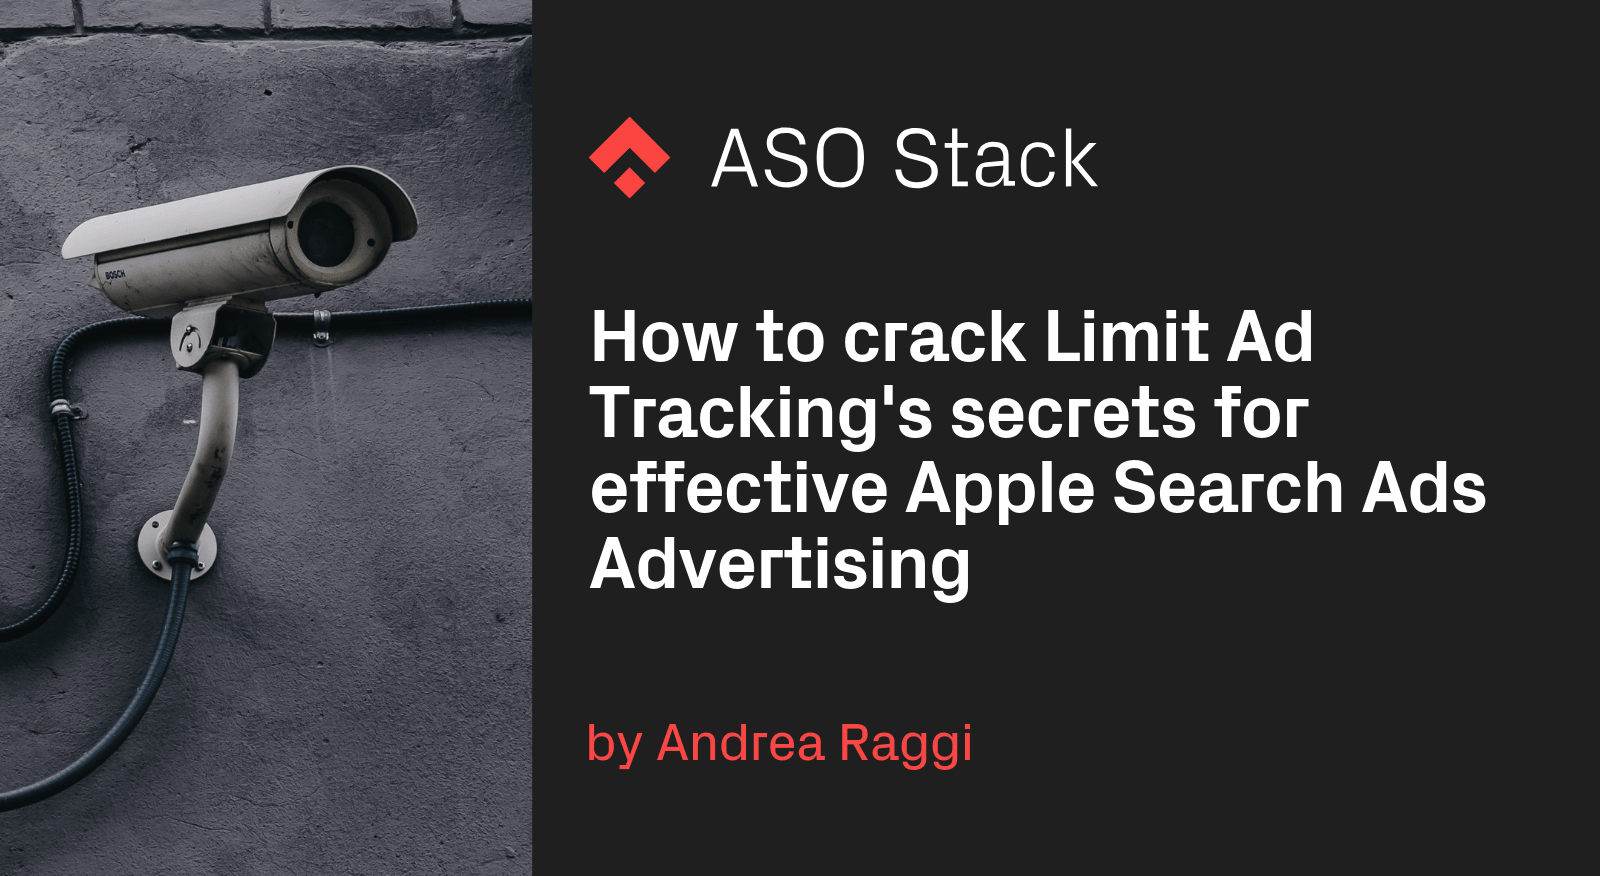 How to crack Limit Ad Tracking's secrets for effective Apple Search Ads Advertising